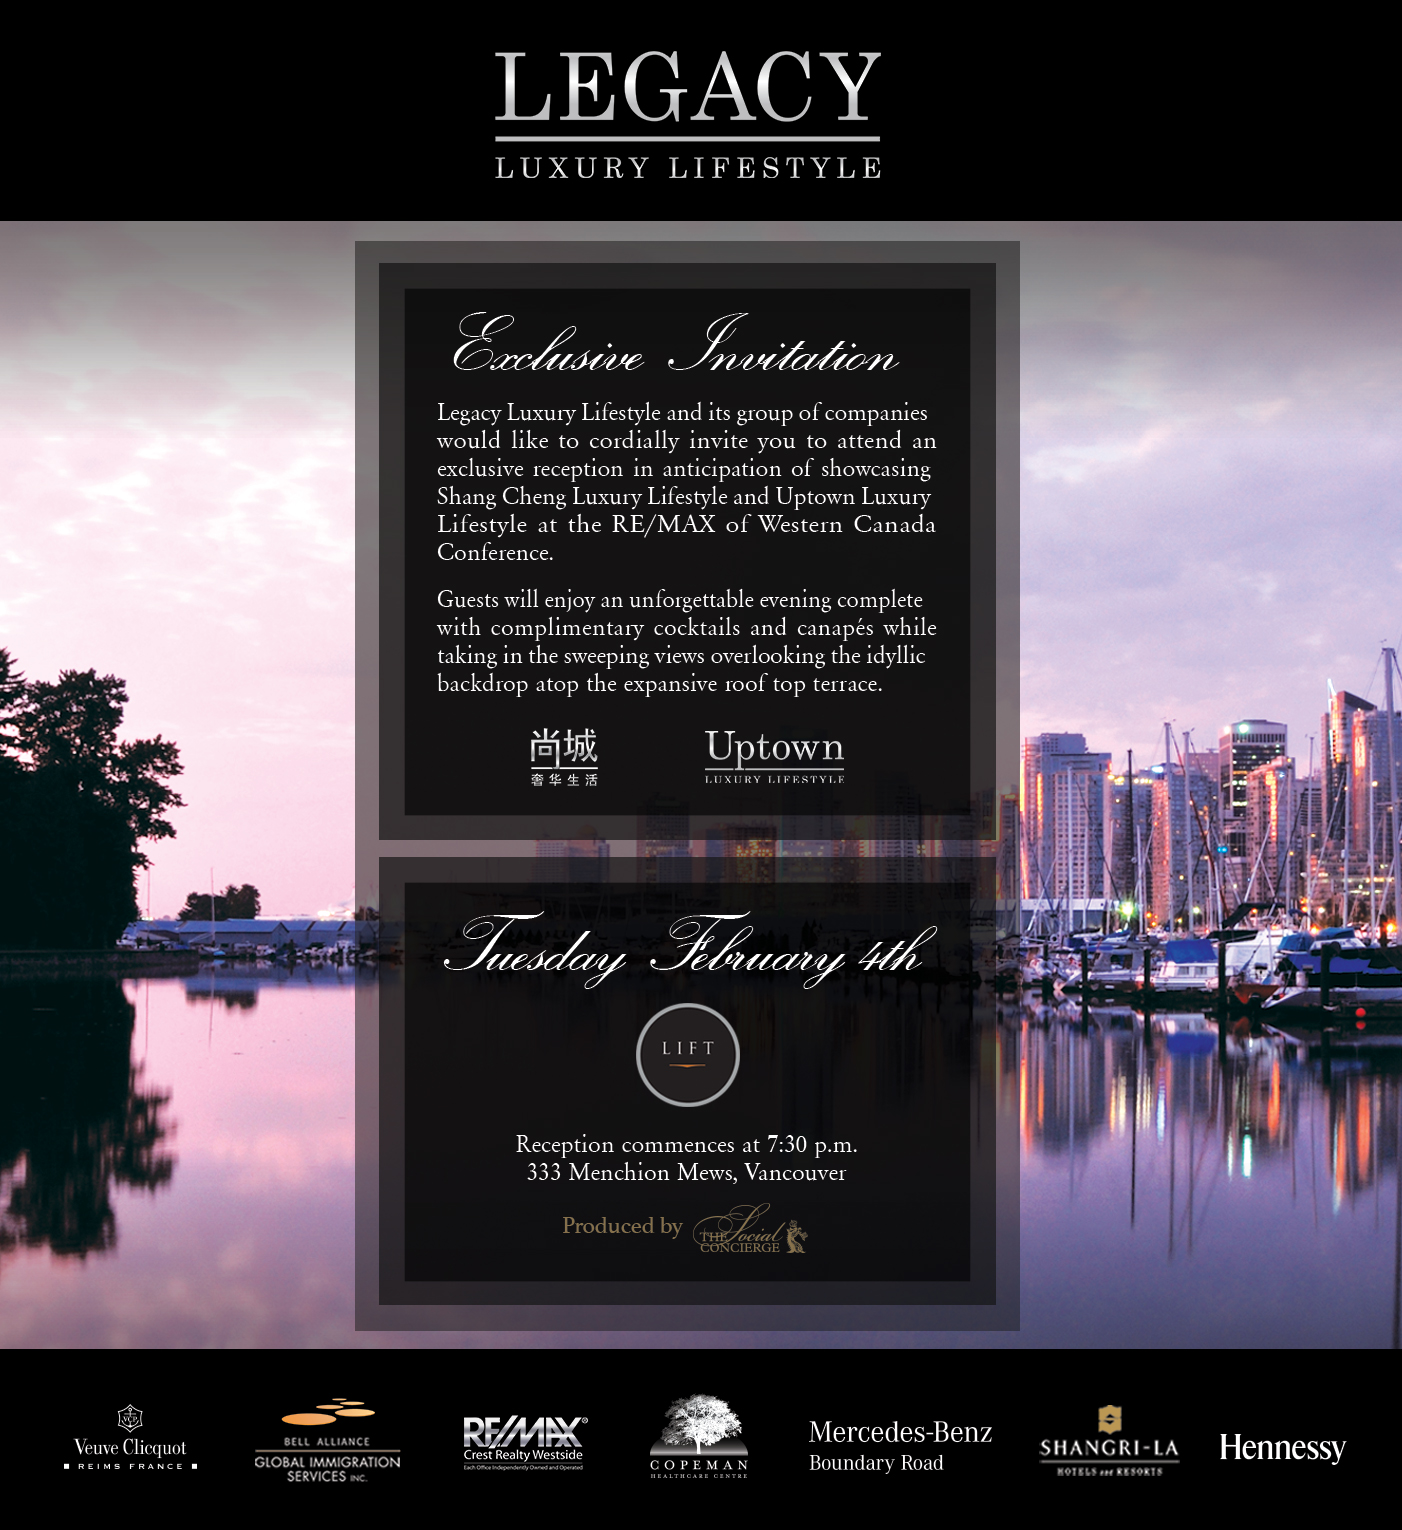 Legacy Luxury Lifestyle and its group of companies - Exclusive Invitation